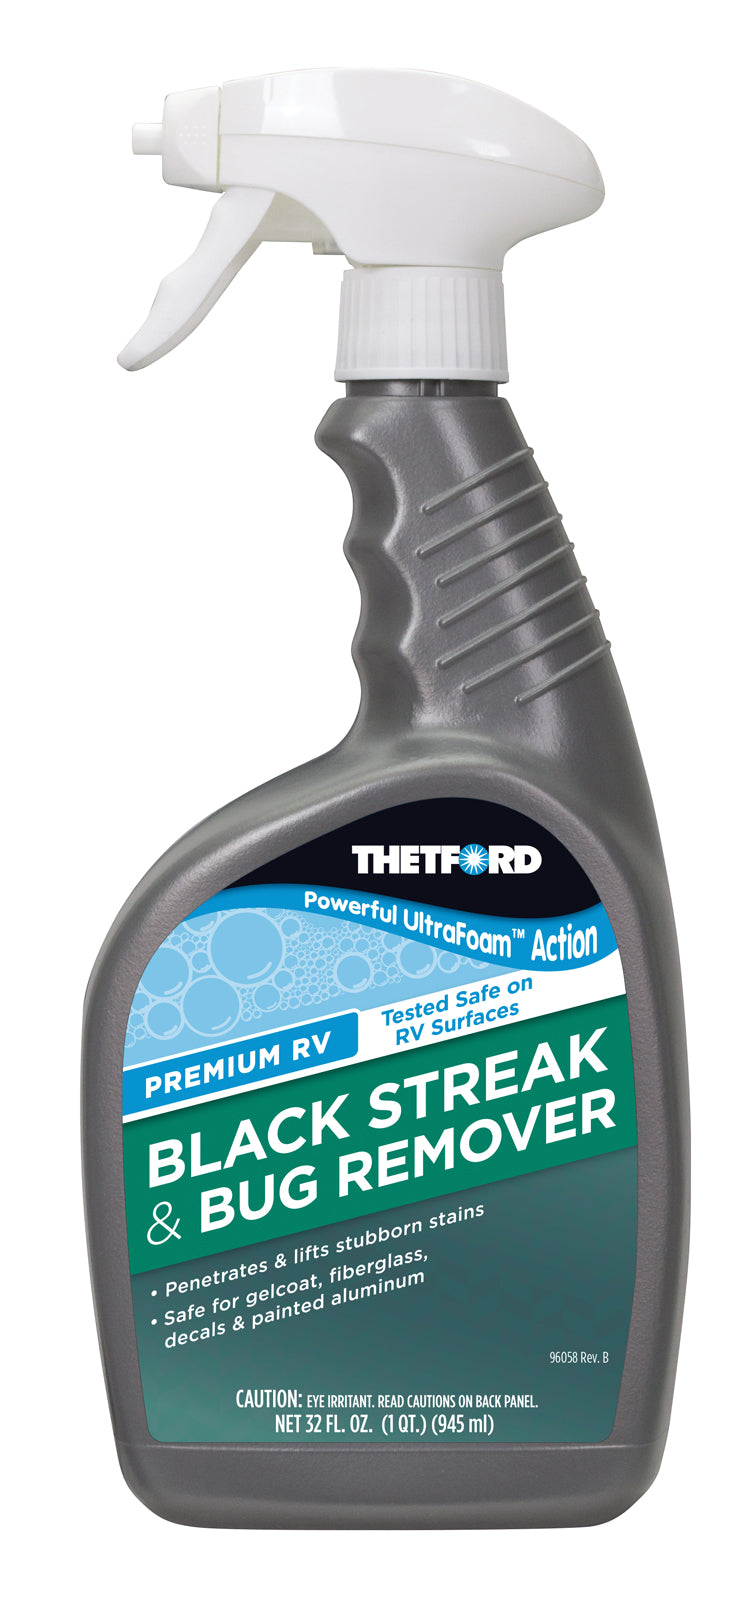 Thetford Premium RV Ultrafoam Black Streak and Bug Remover